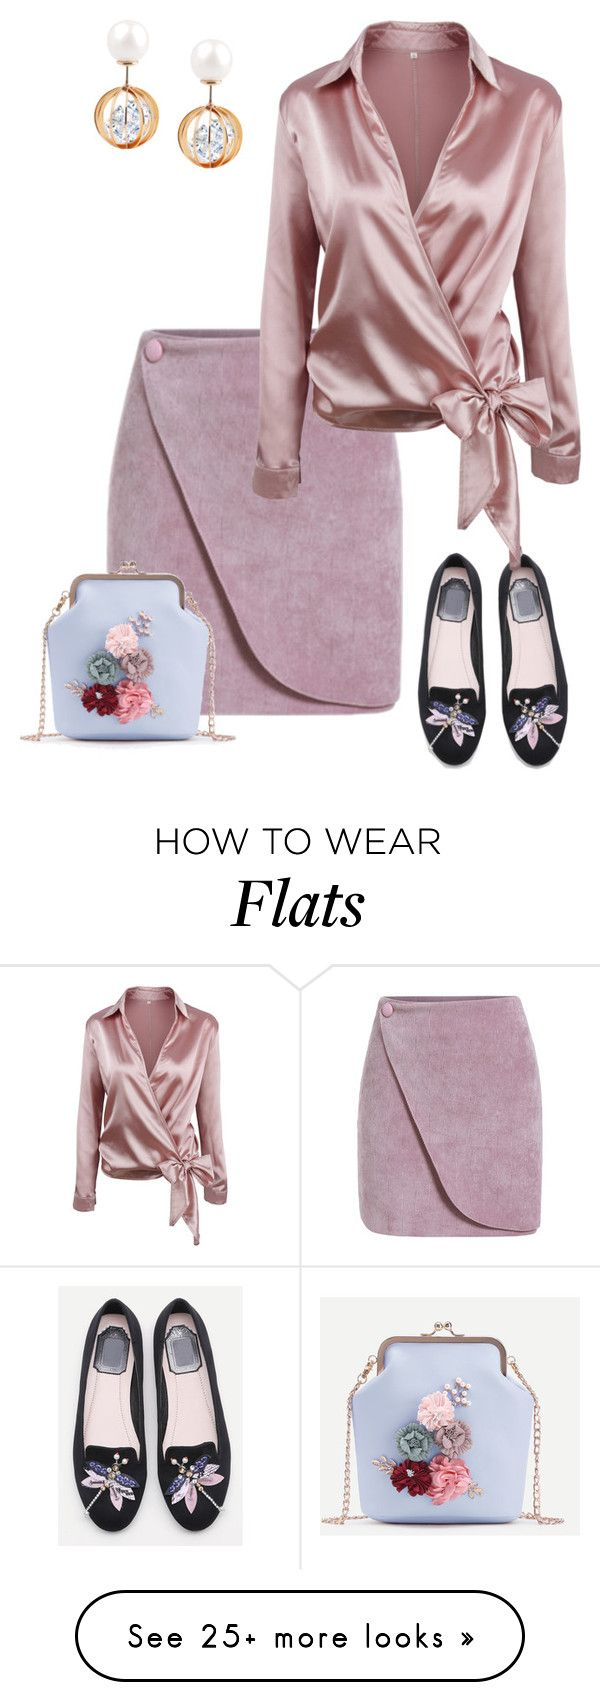 """Без названия #308"" by polychampion-668 on Polyvore featuring WithChic"